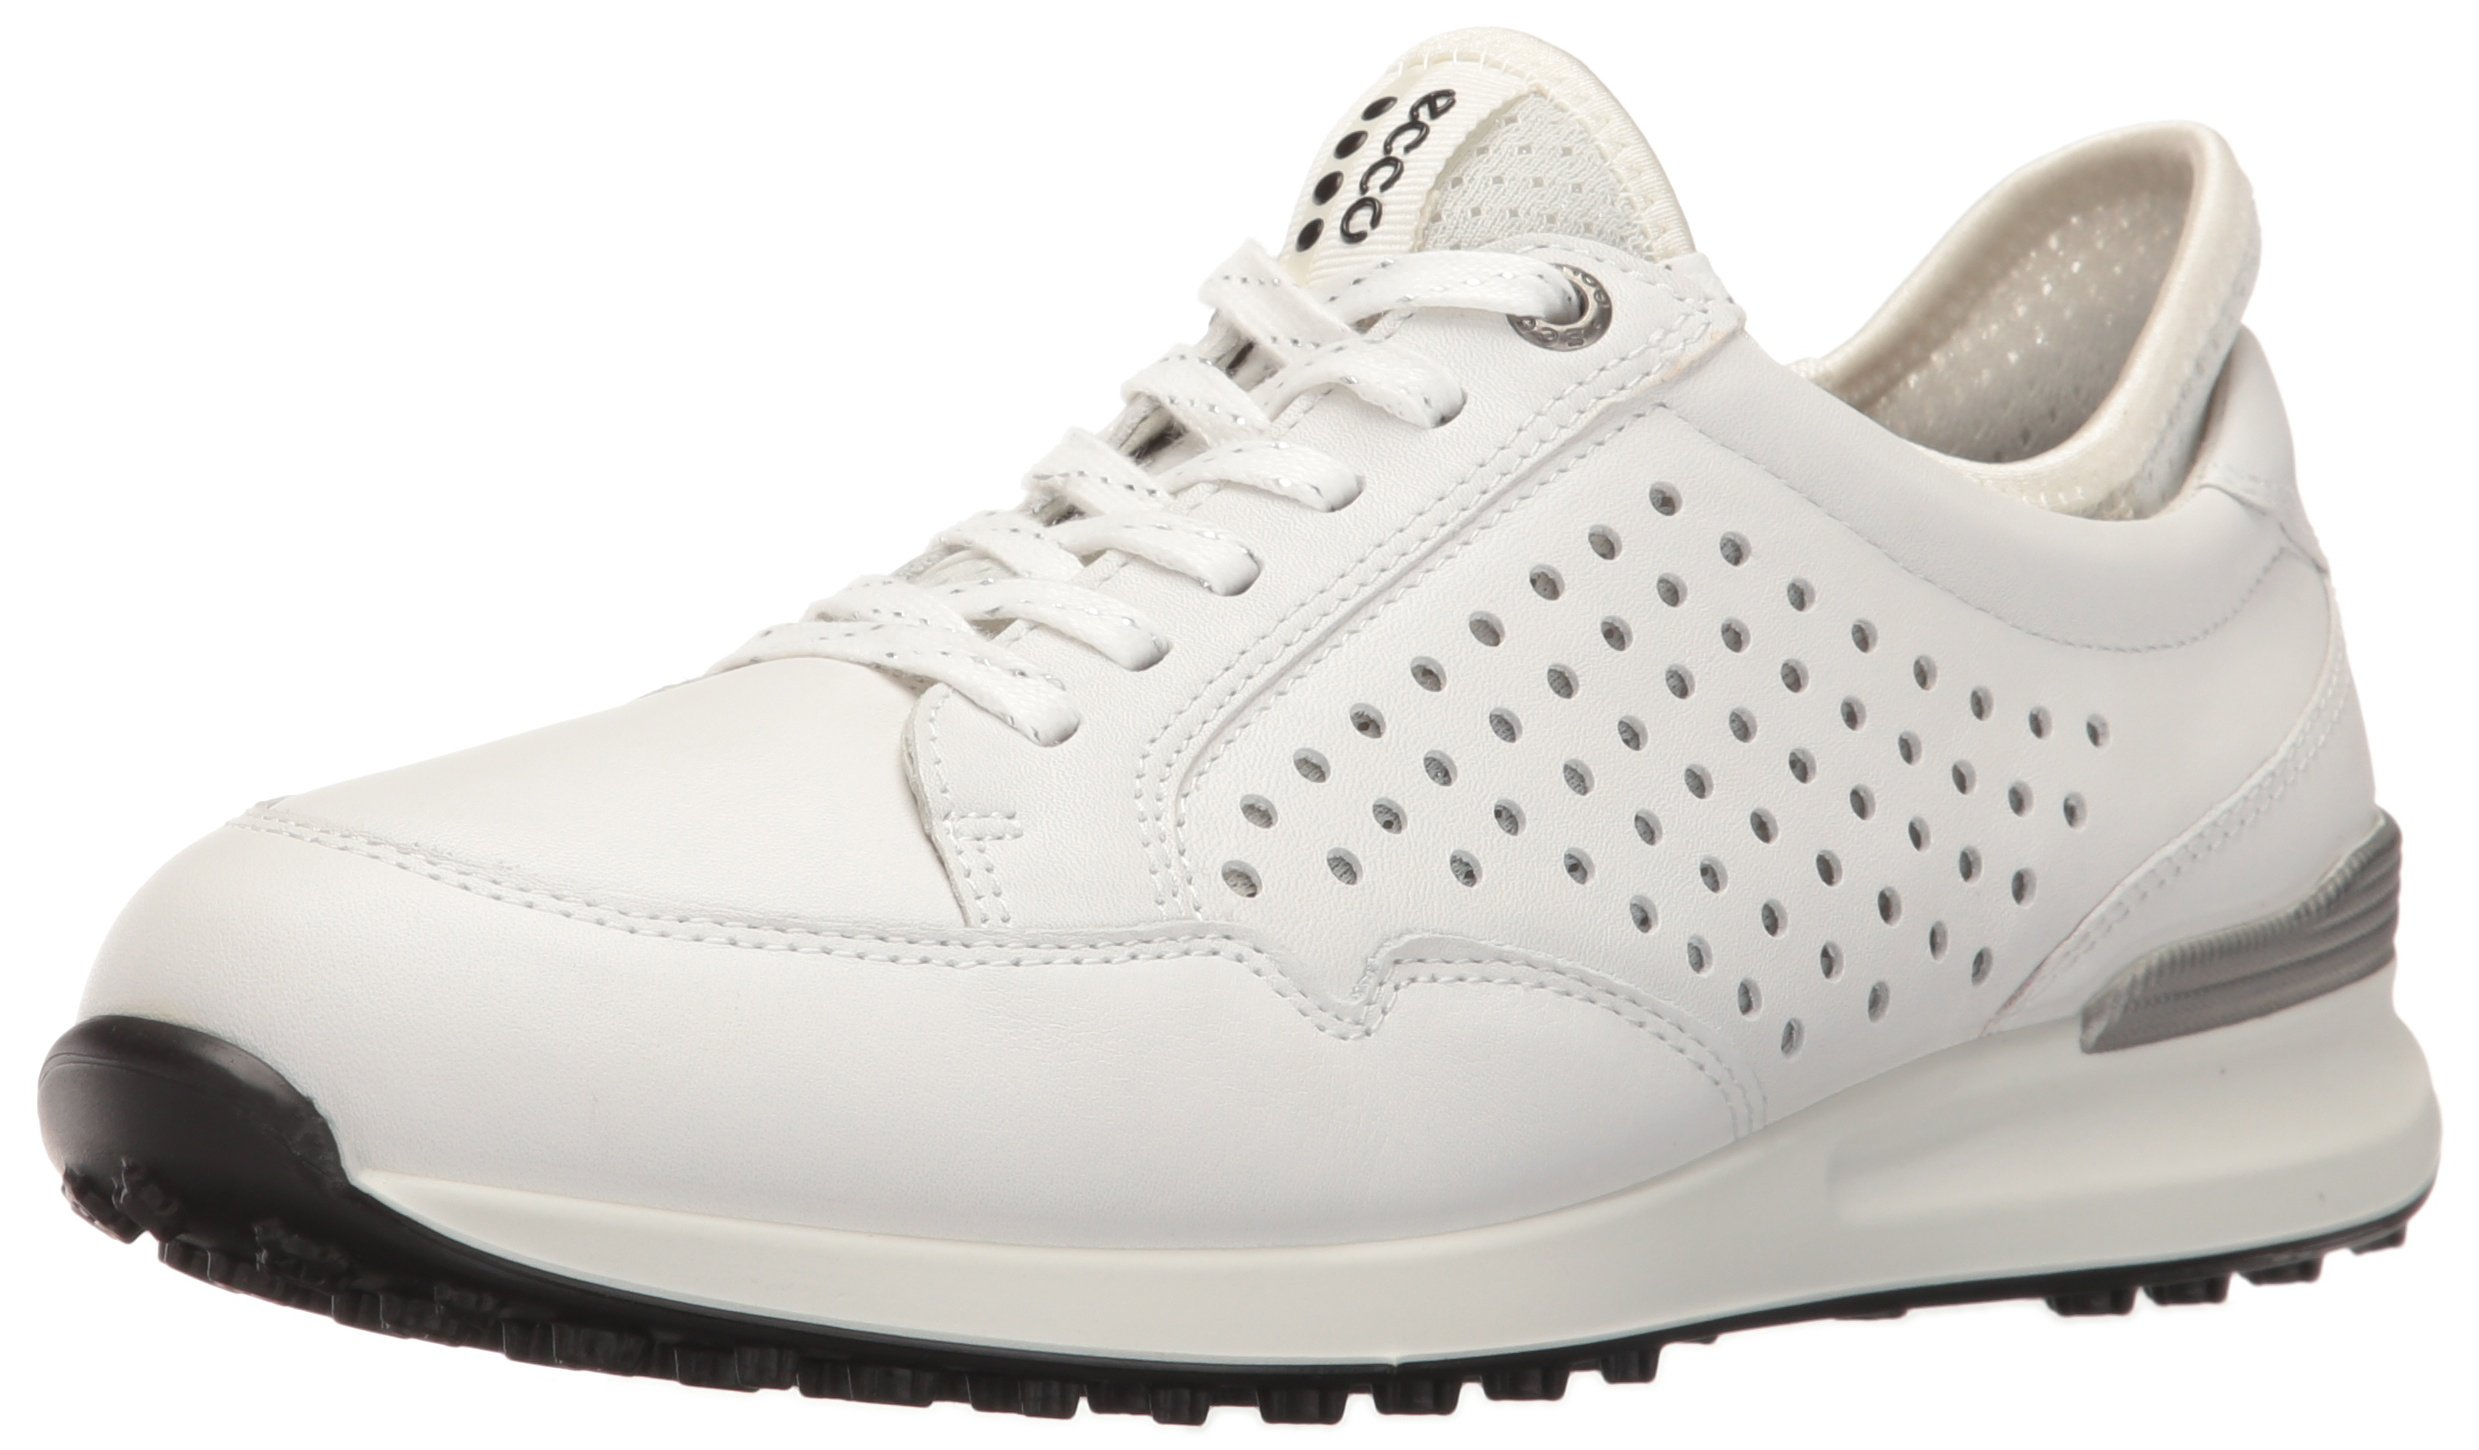 ECCO Women's Speed Hybrid Golf Shoe, White/White, 38 EU/7-7.5 M US by ECCO